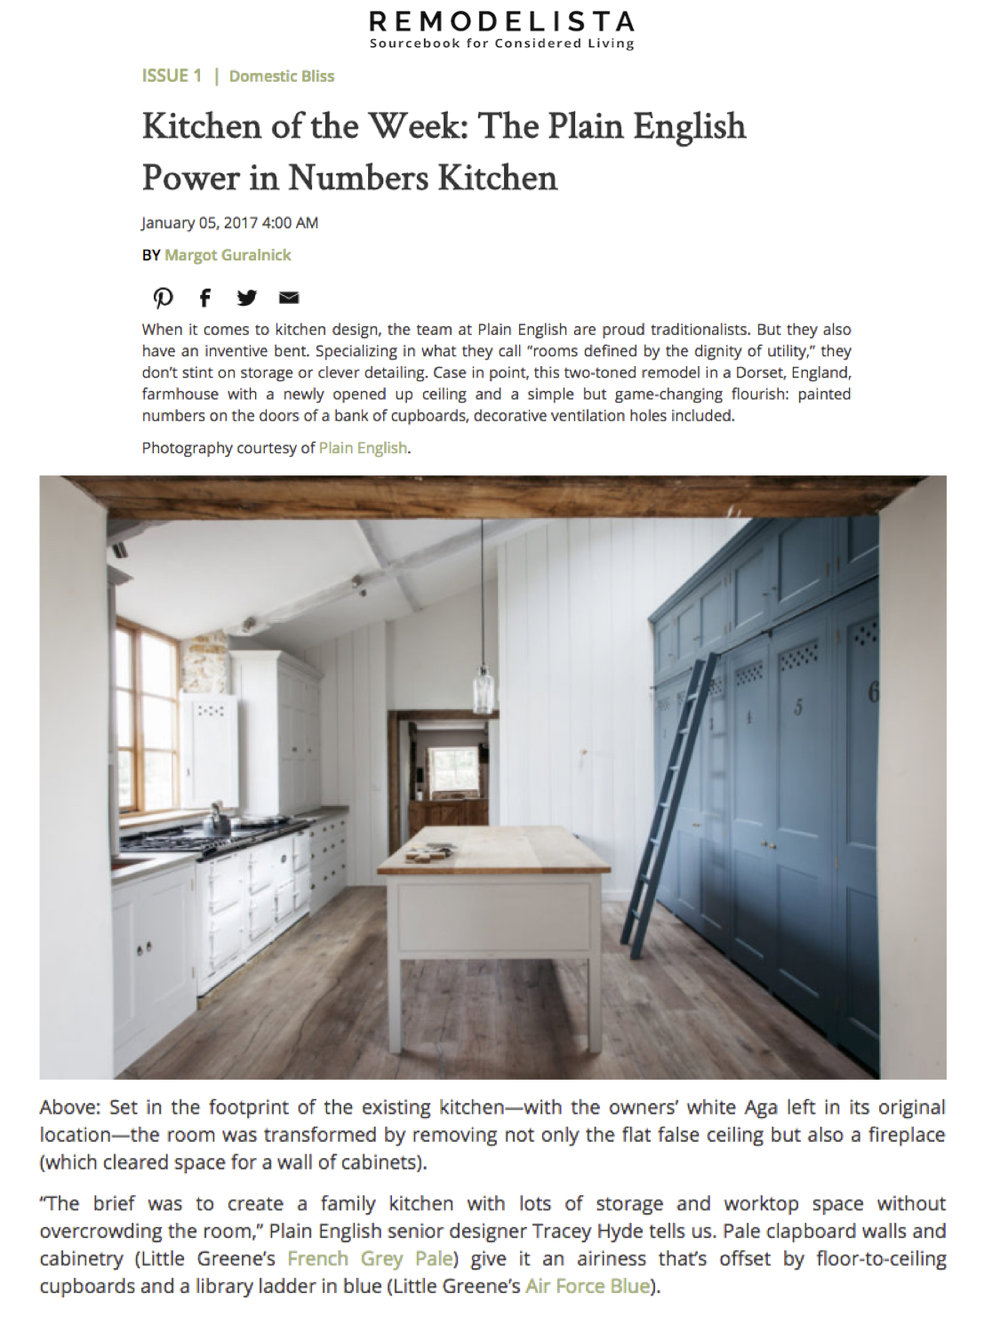 Remodelista_5January2017 (dragged).jpg